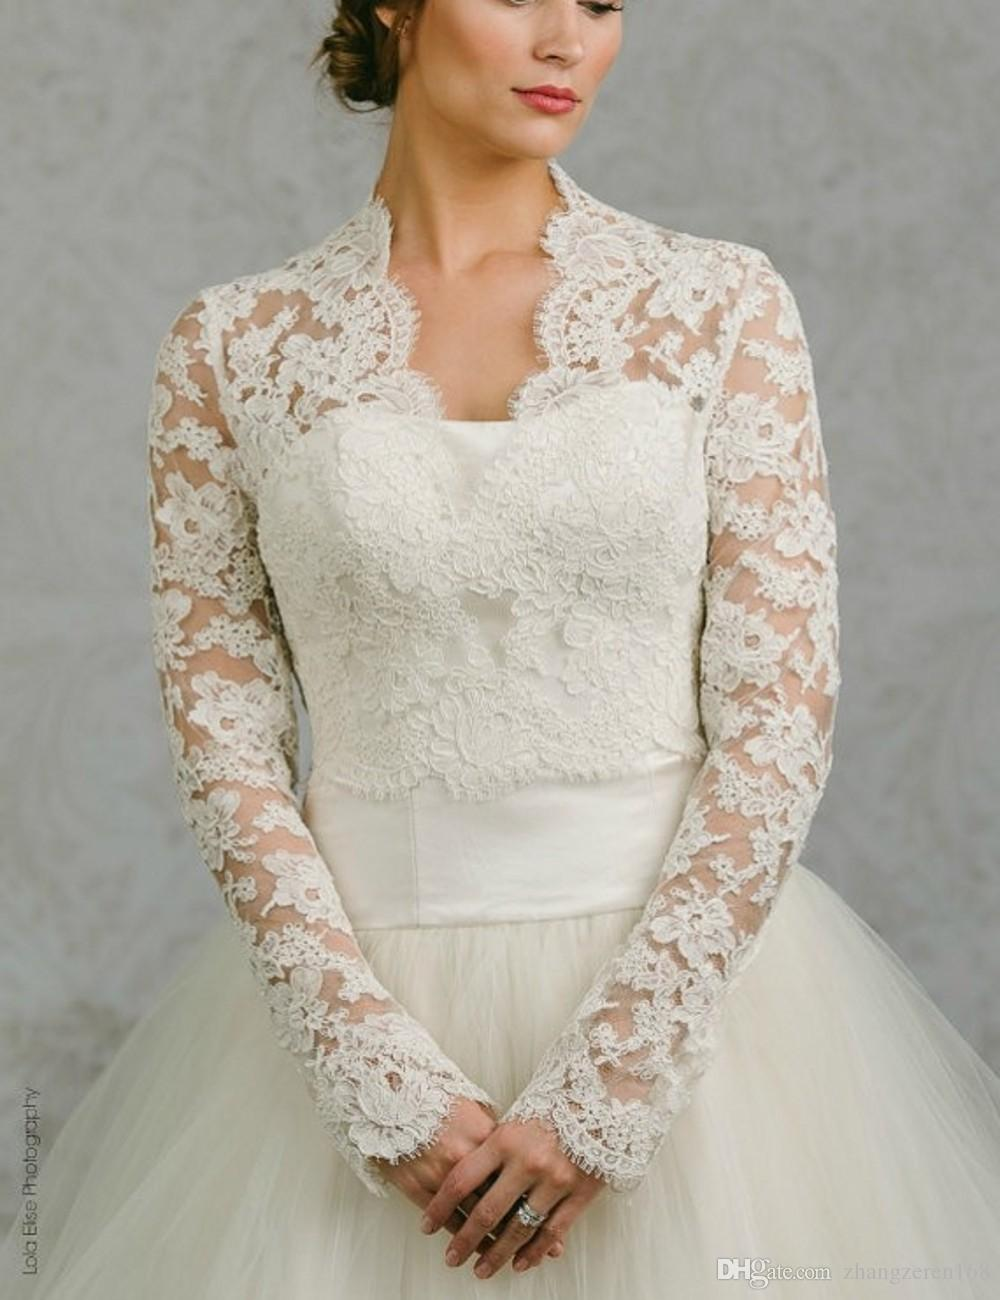 Full Sleeves Wedding Bolero Jackets Mesh Lace Bridal Accessories Jacket For Prom Bridal Dresses V-neckline Bolero Jacket